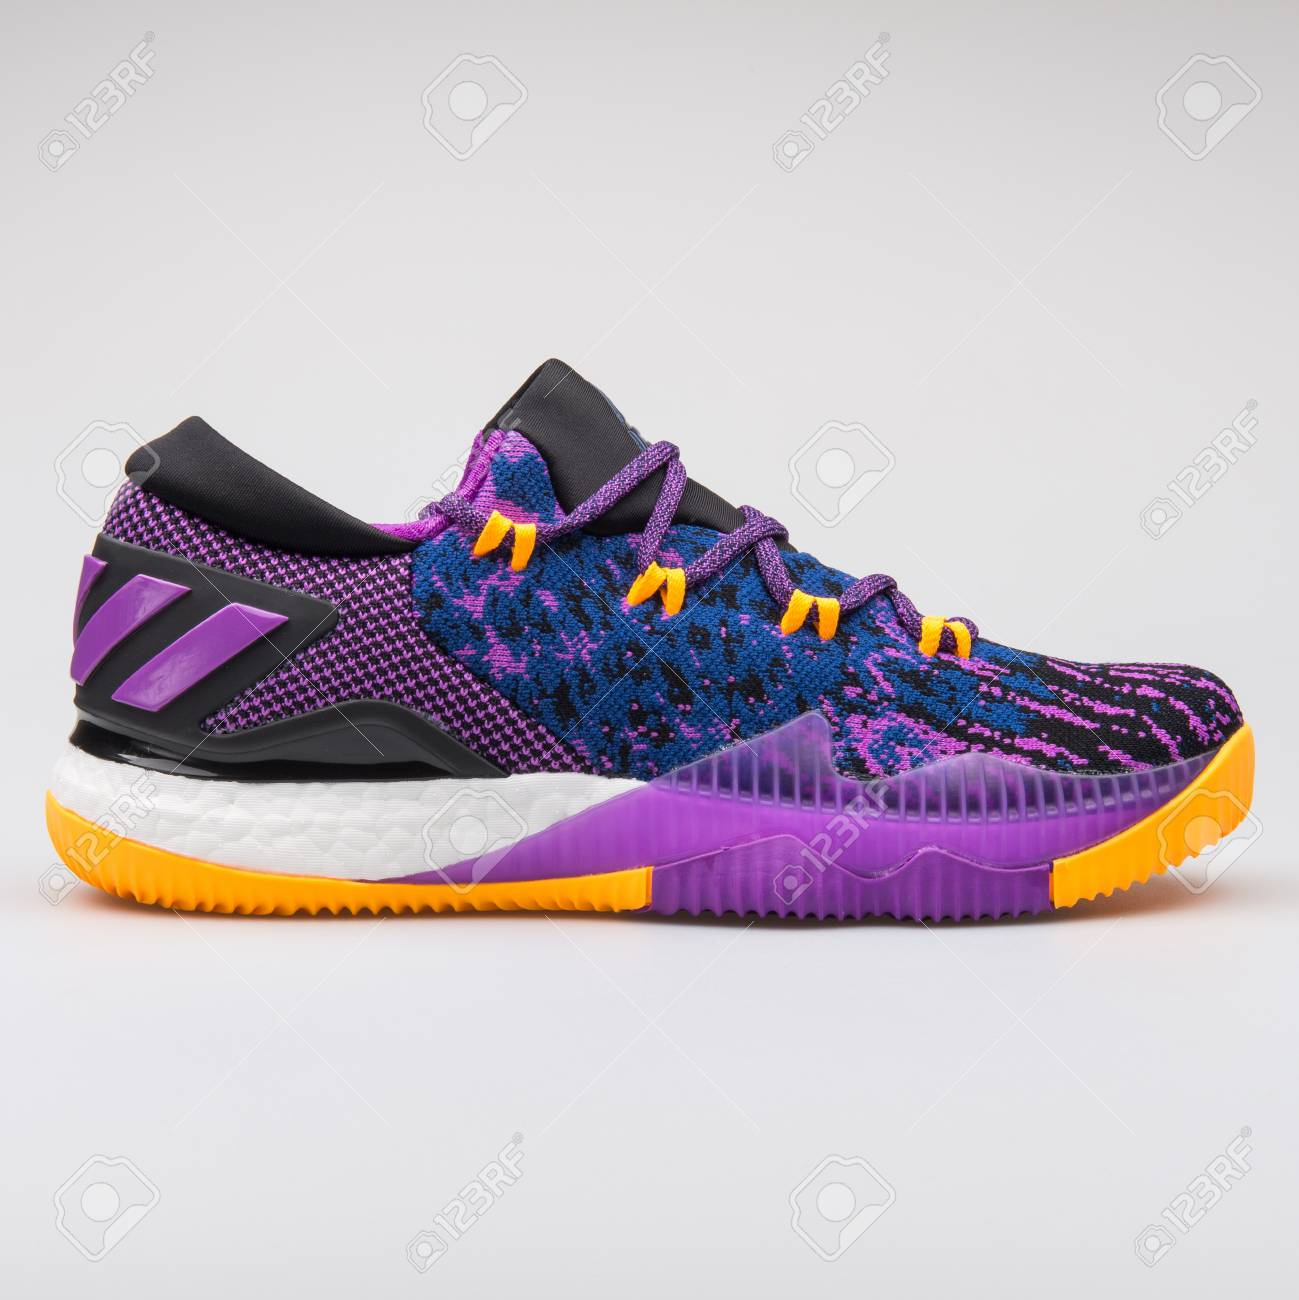 adidas crazy boost 2017 - 60% remise